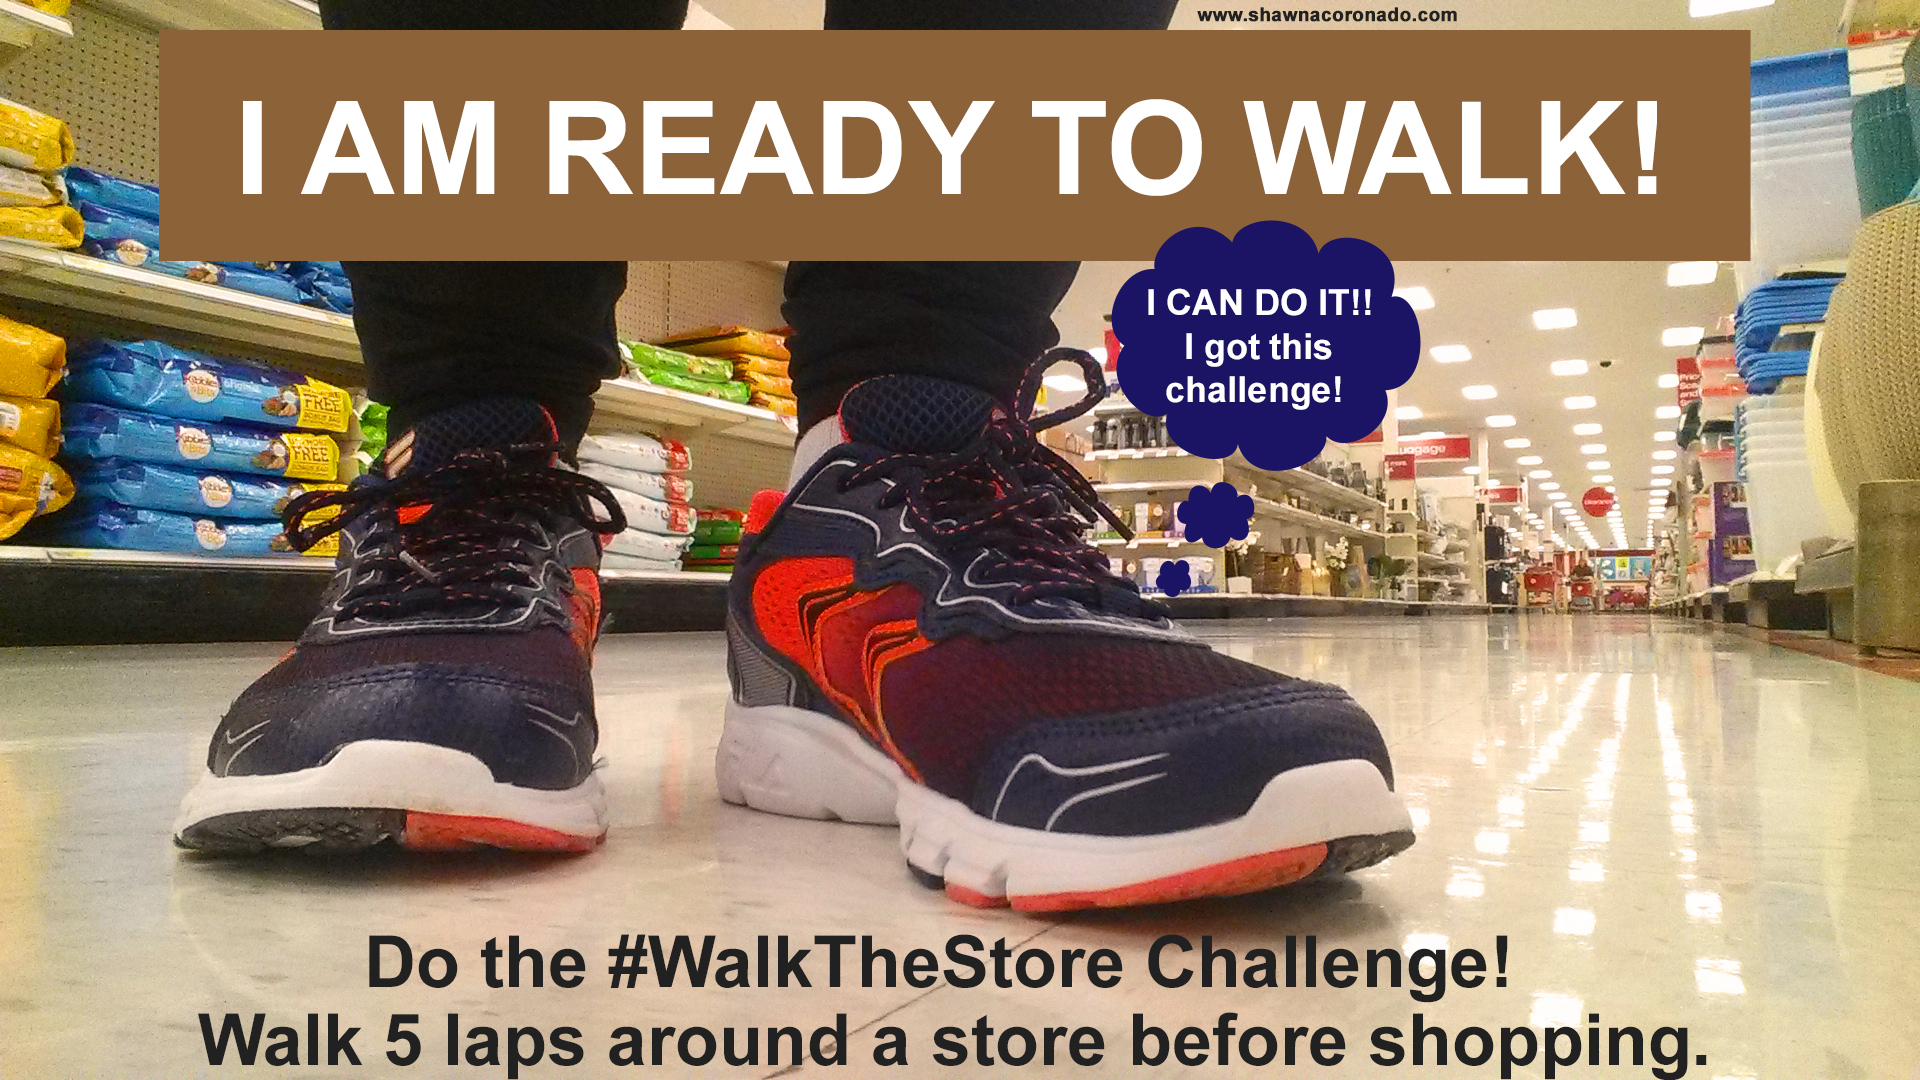 Walk the Store Challenge #walkthestore